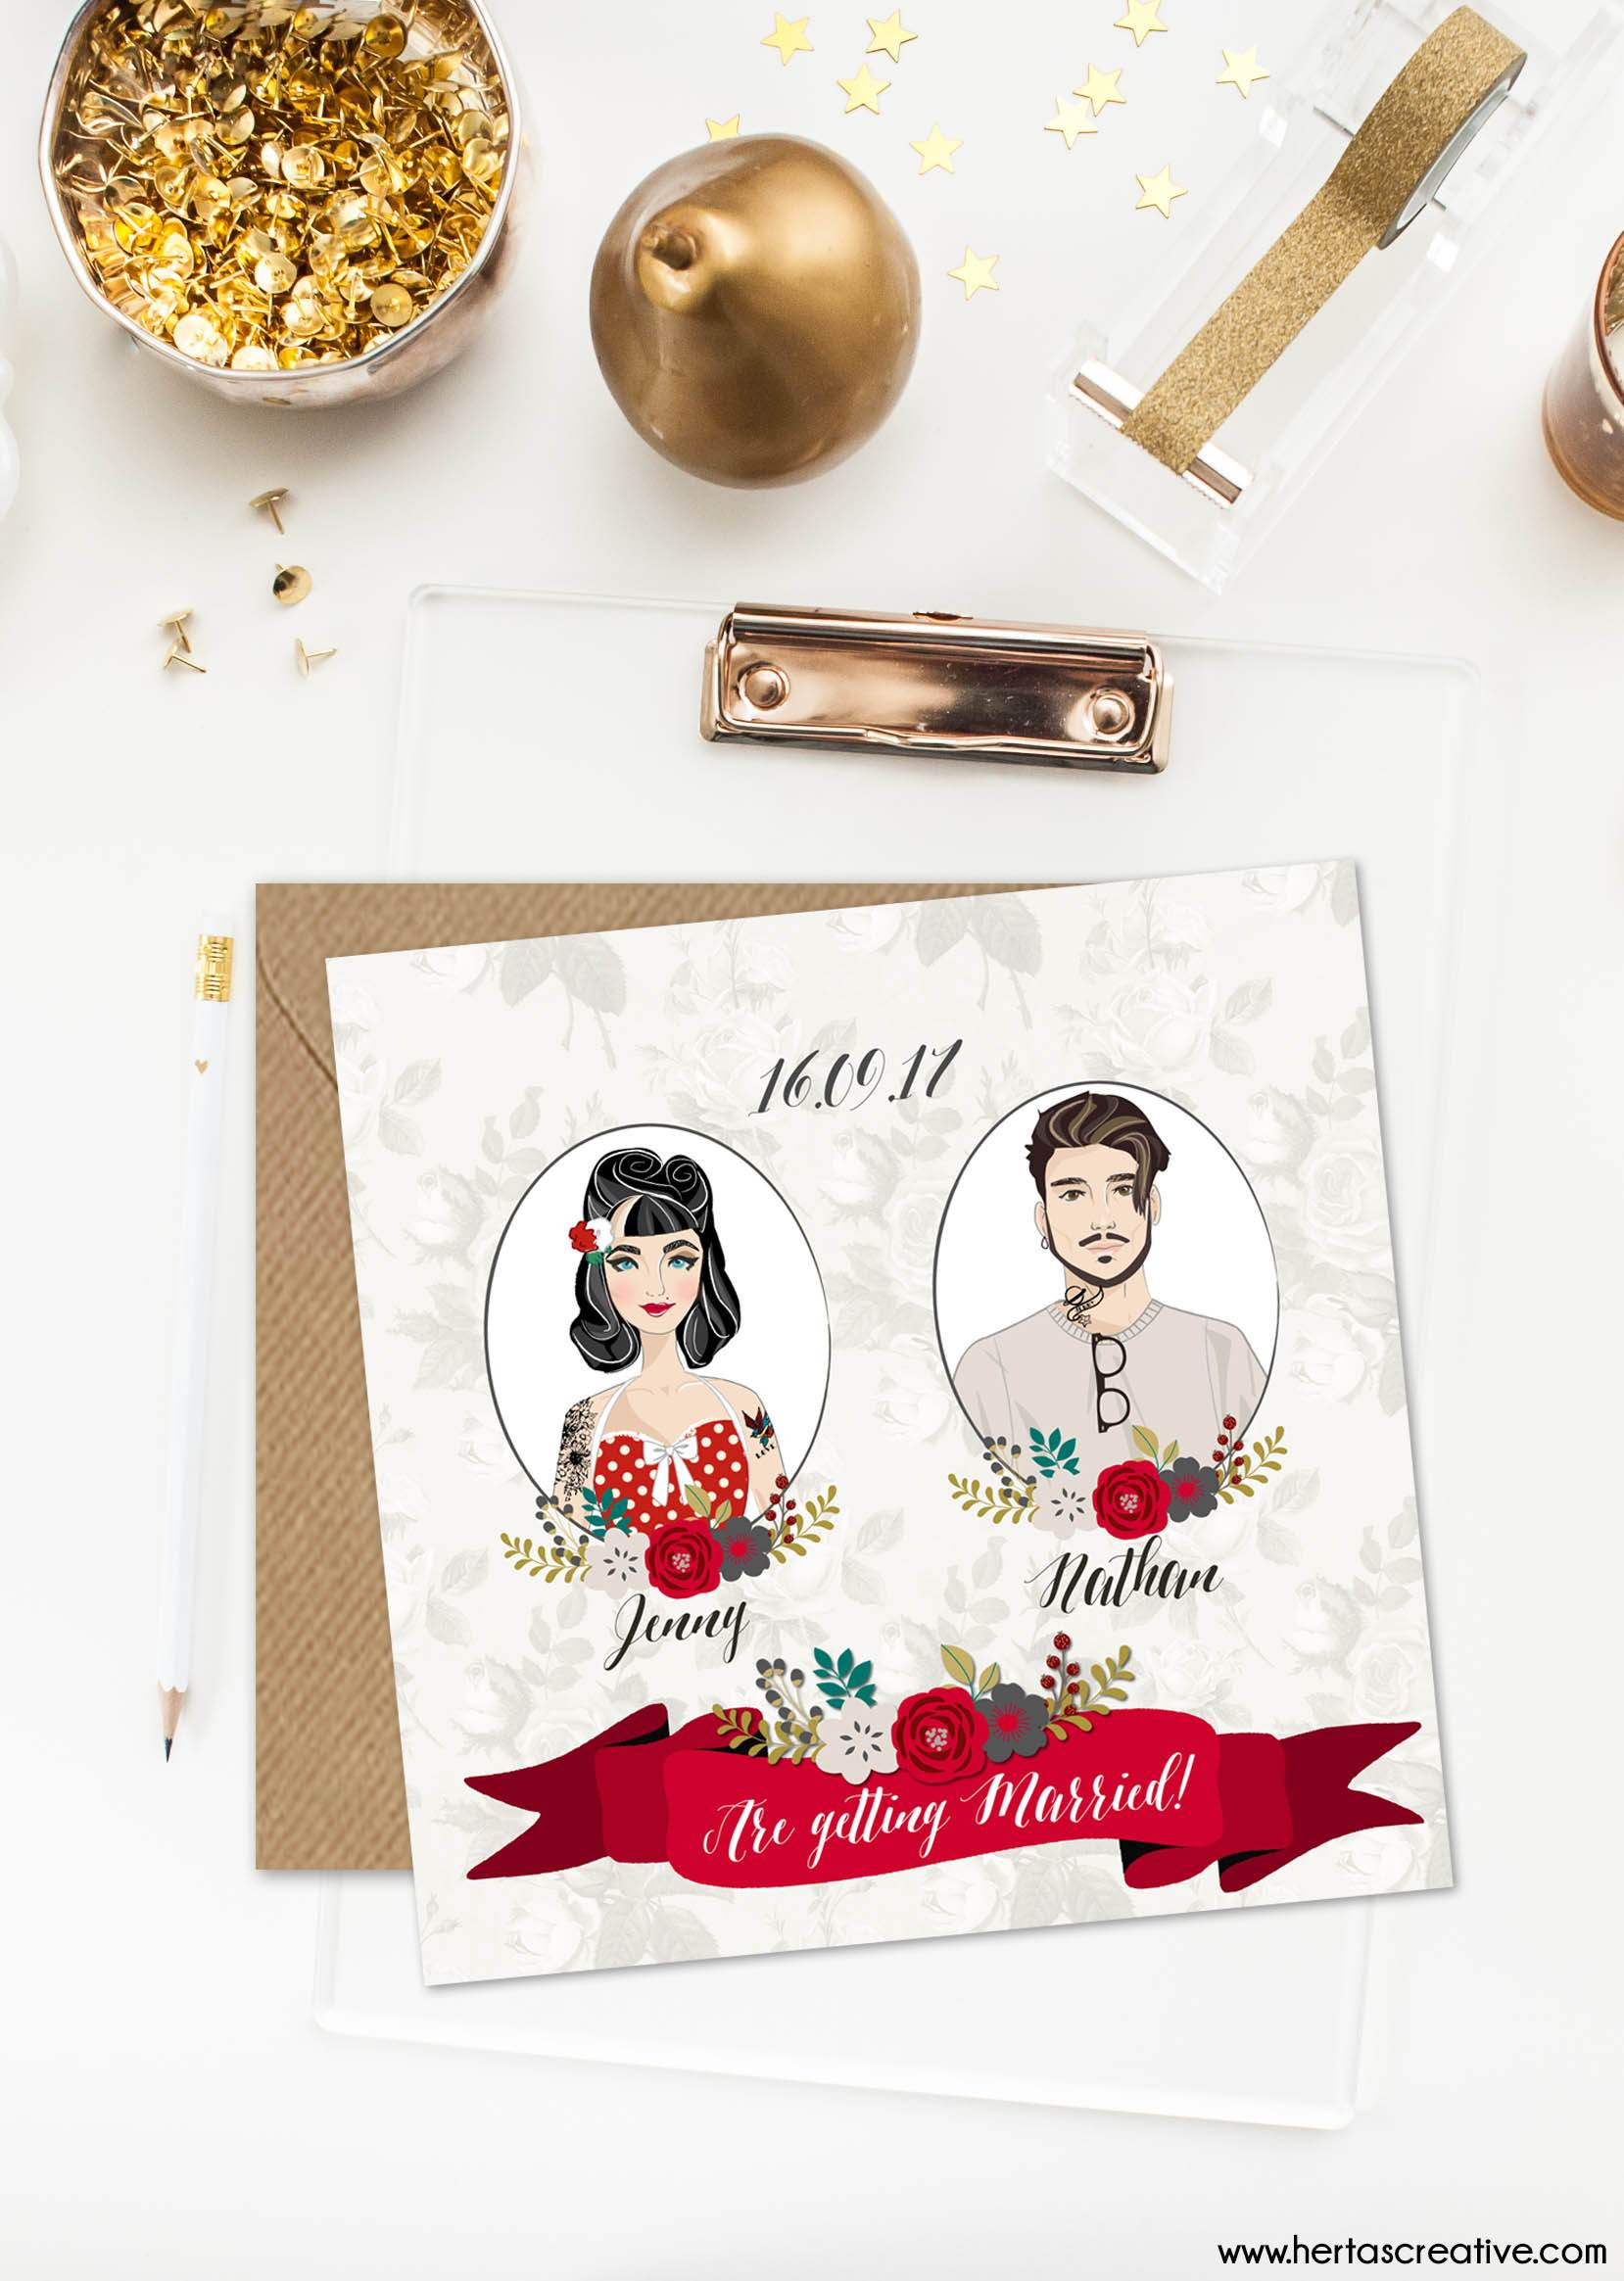 5 wedding stationery themes you will love by Hertas Creative